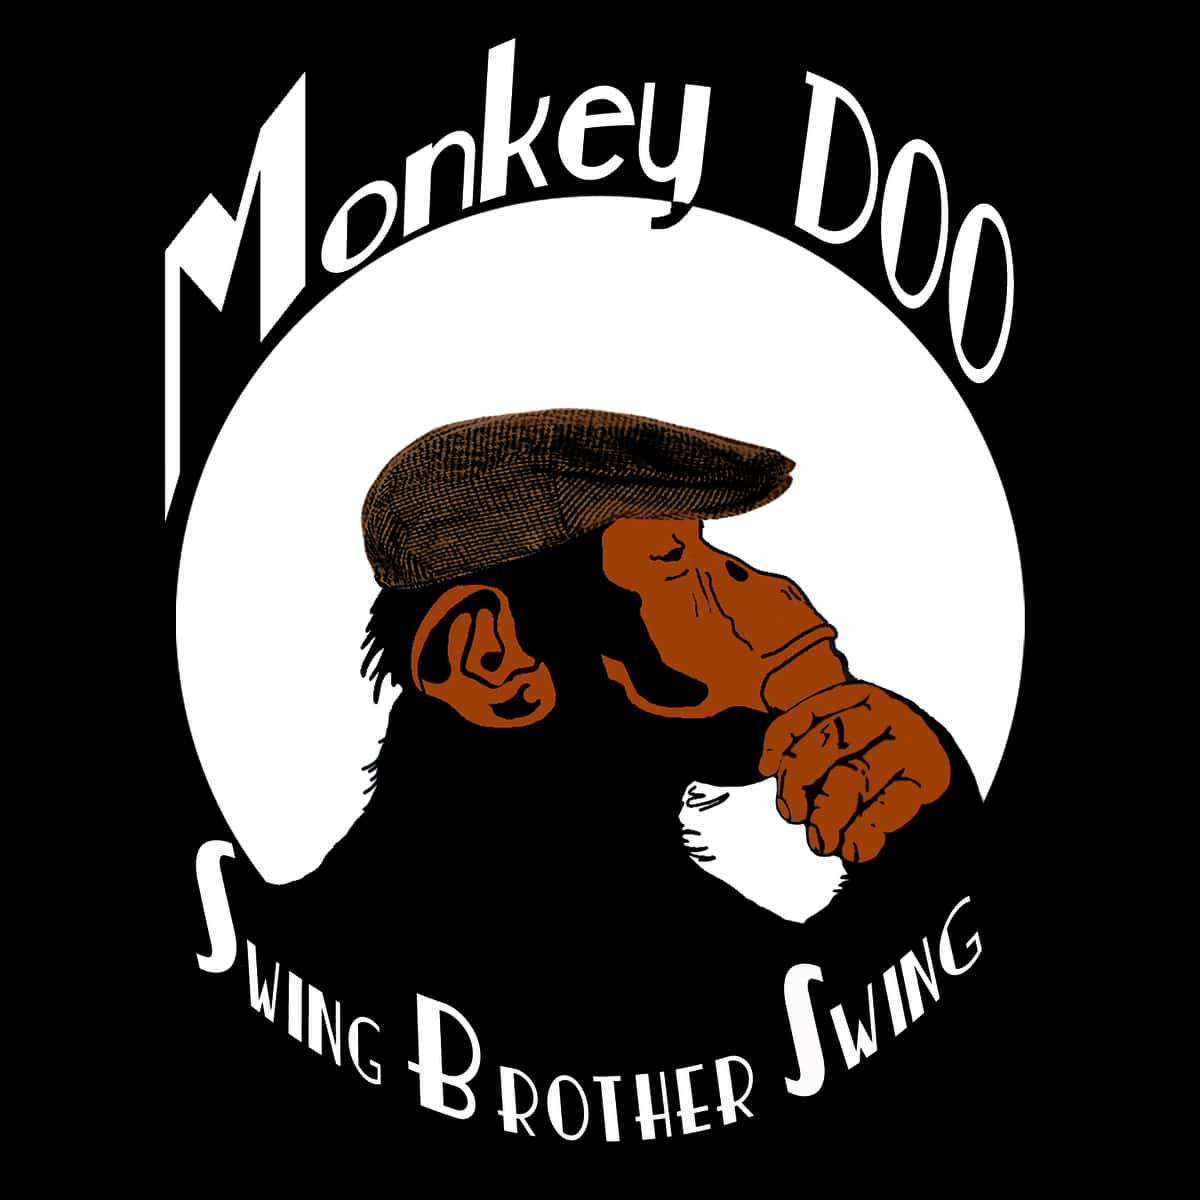 swingbrotherswing_monkeydoo